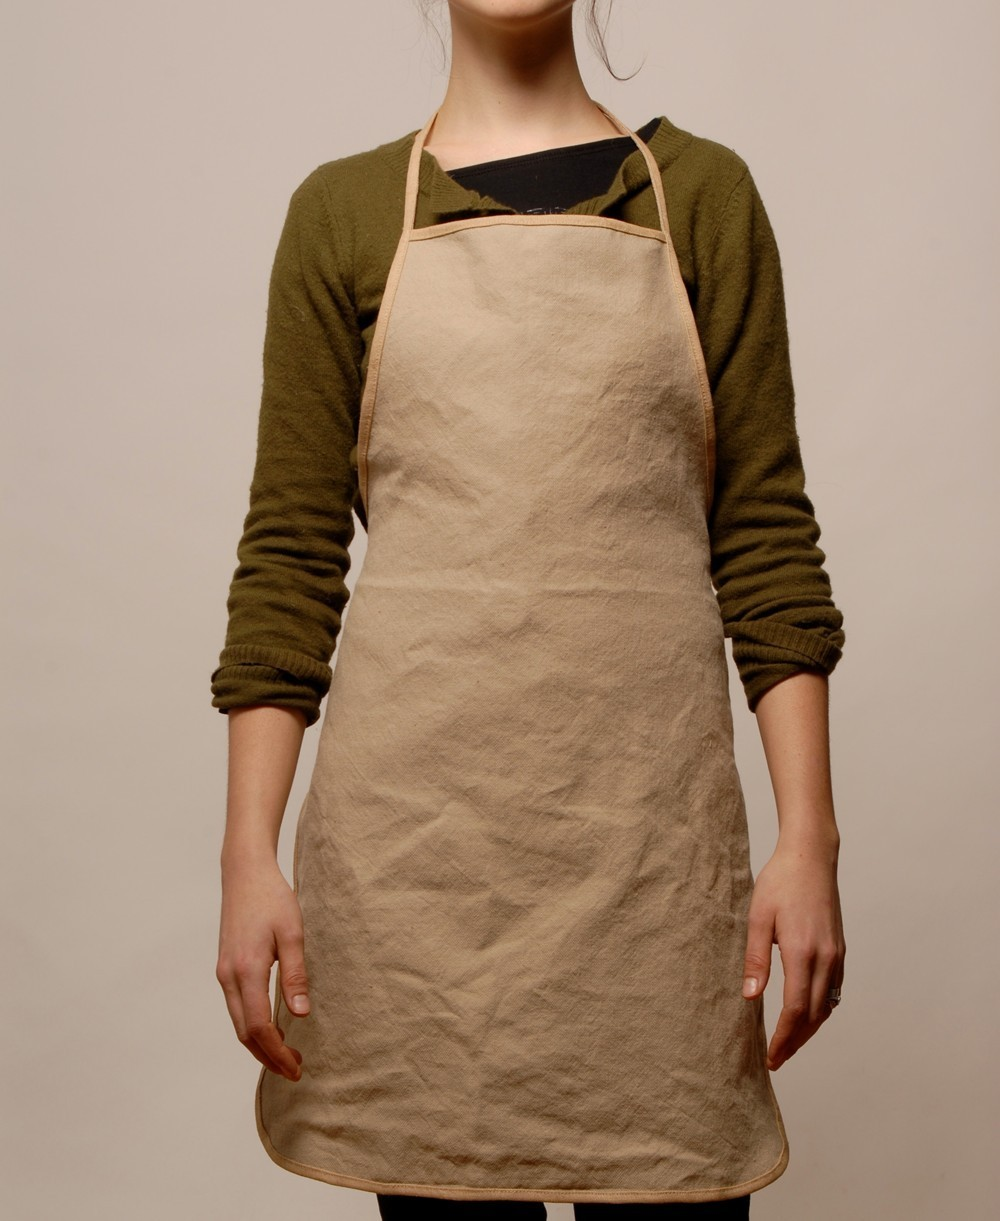 I need this apron for leather dying.